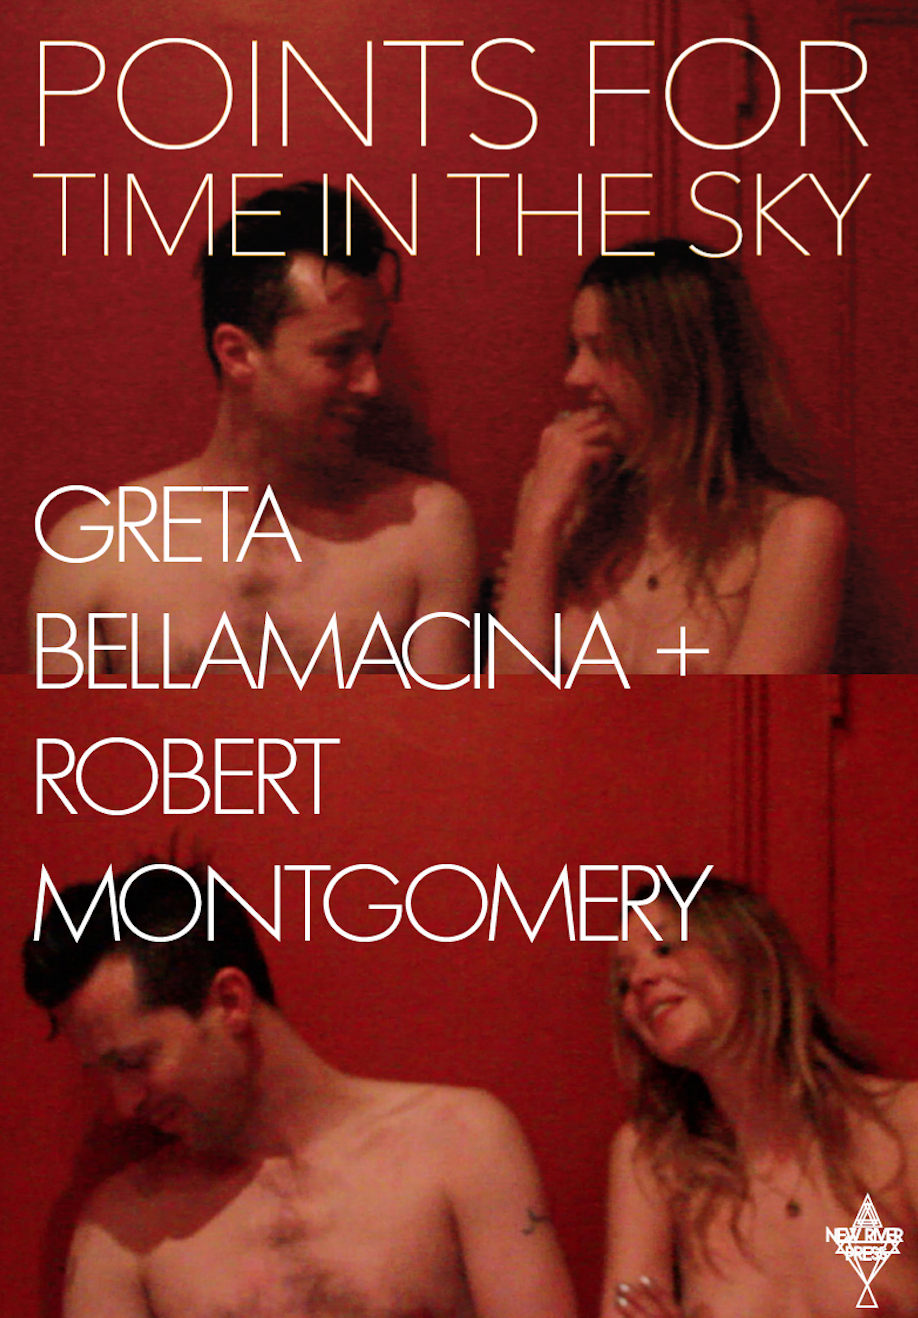 Greta Bellamacina + Robert Montgomery's collection Points For Time In The Sky, second edition available with New River Press.